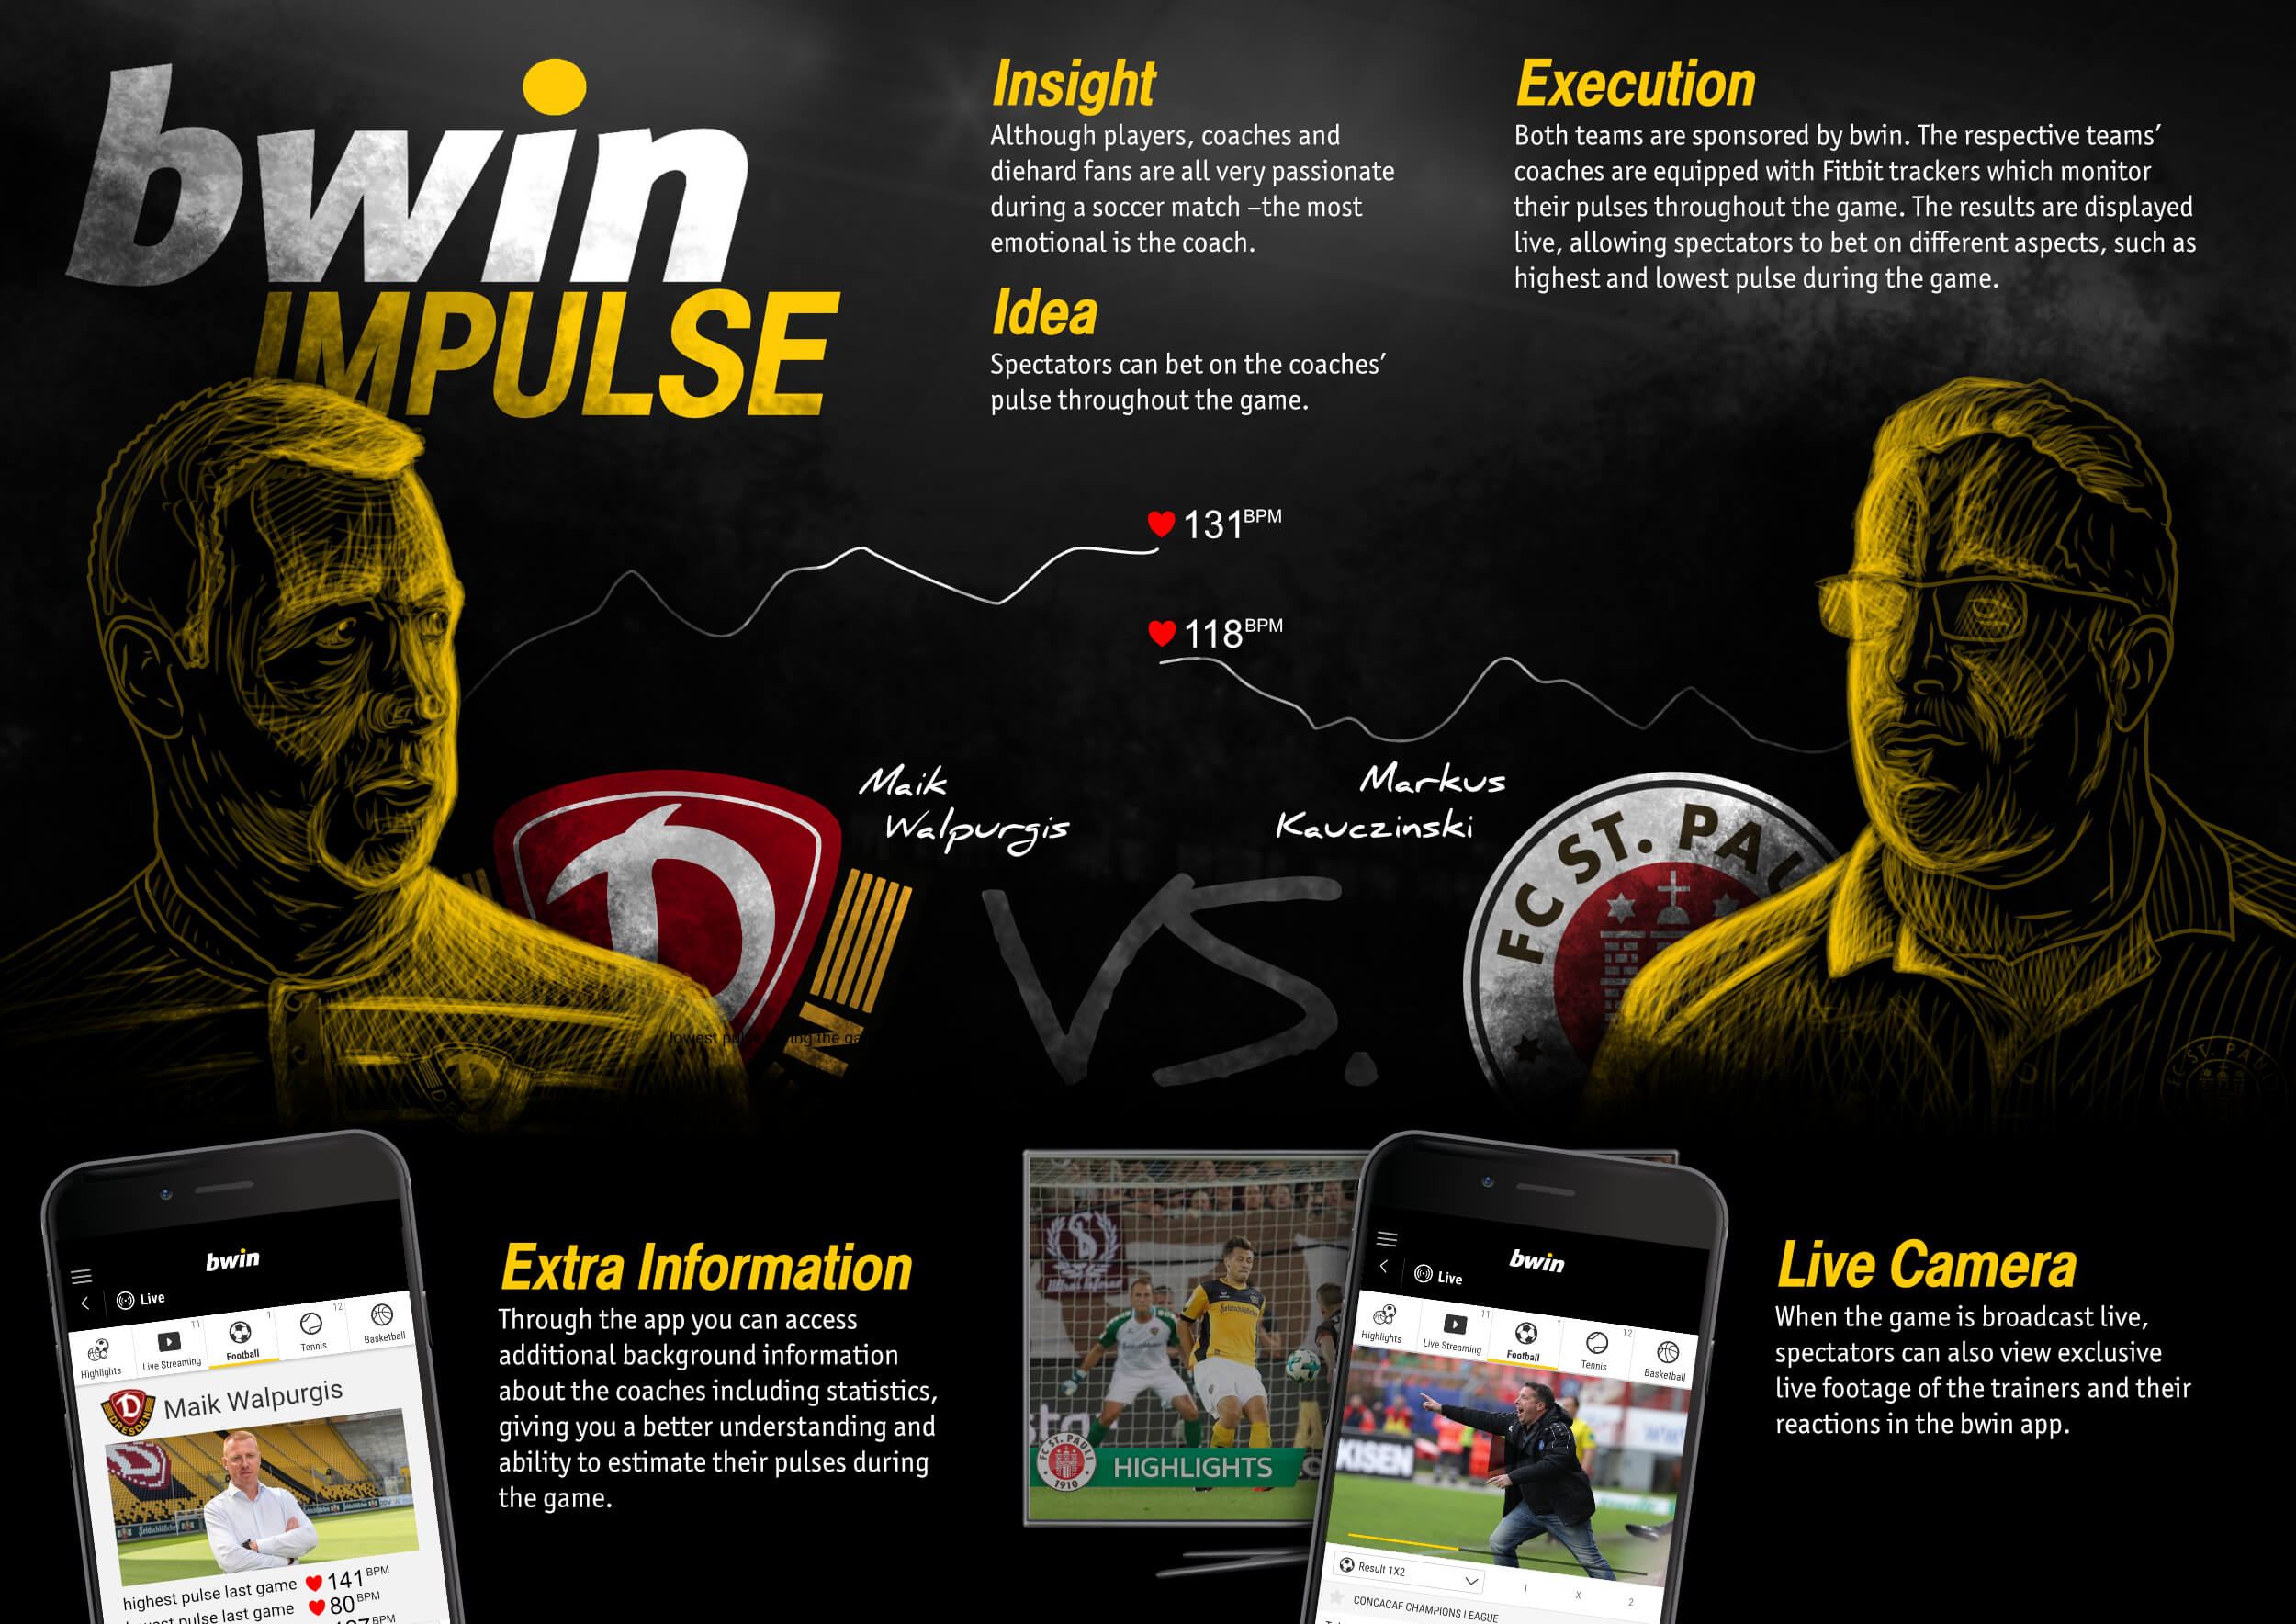 bwin Impulse